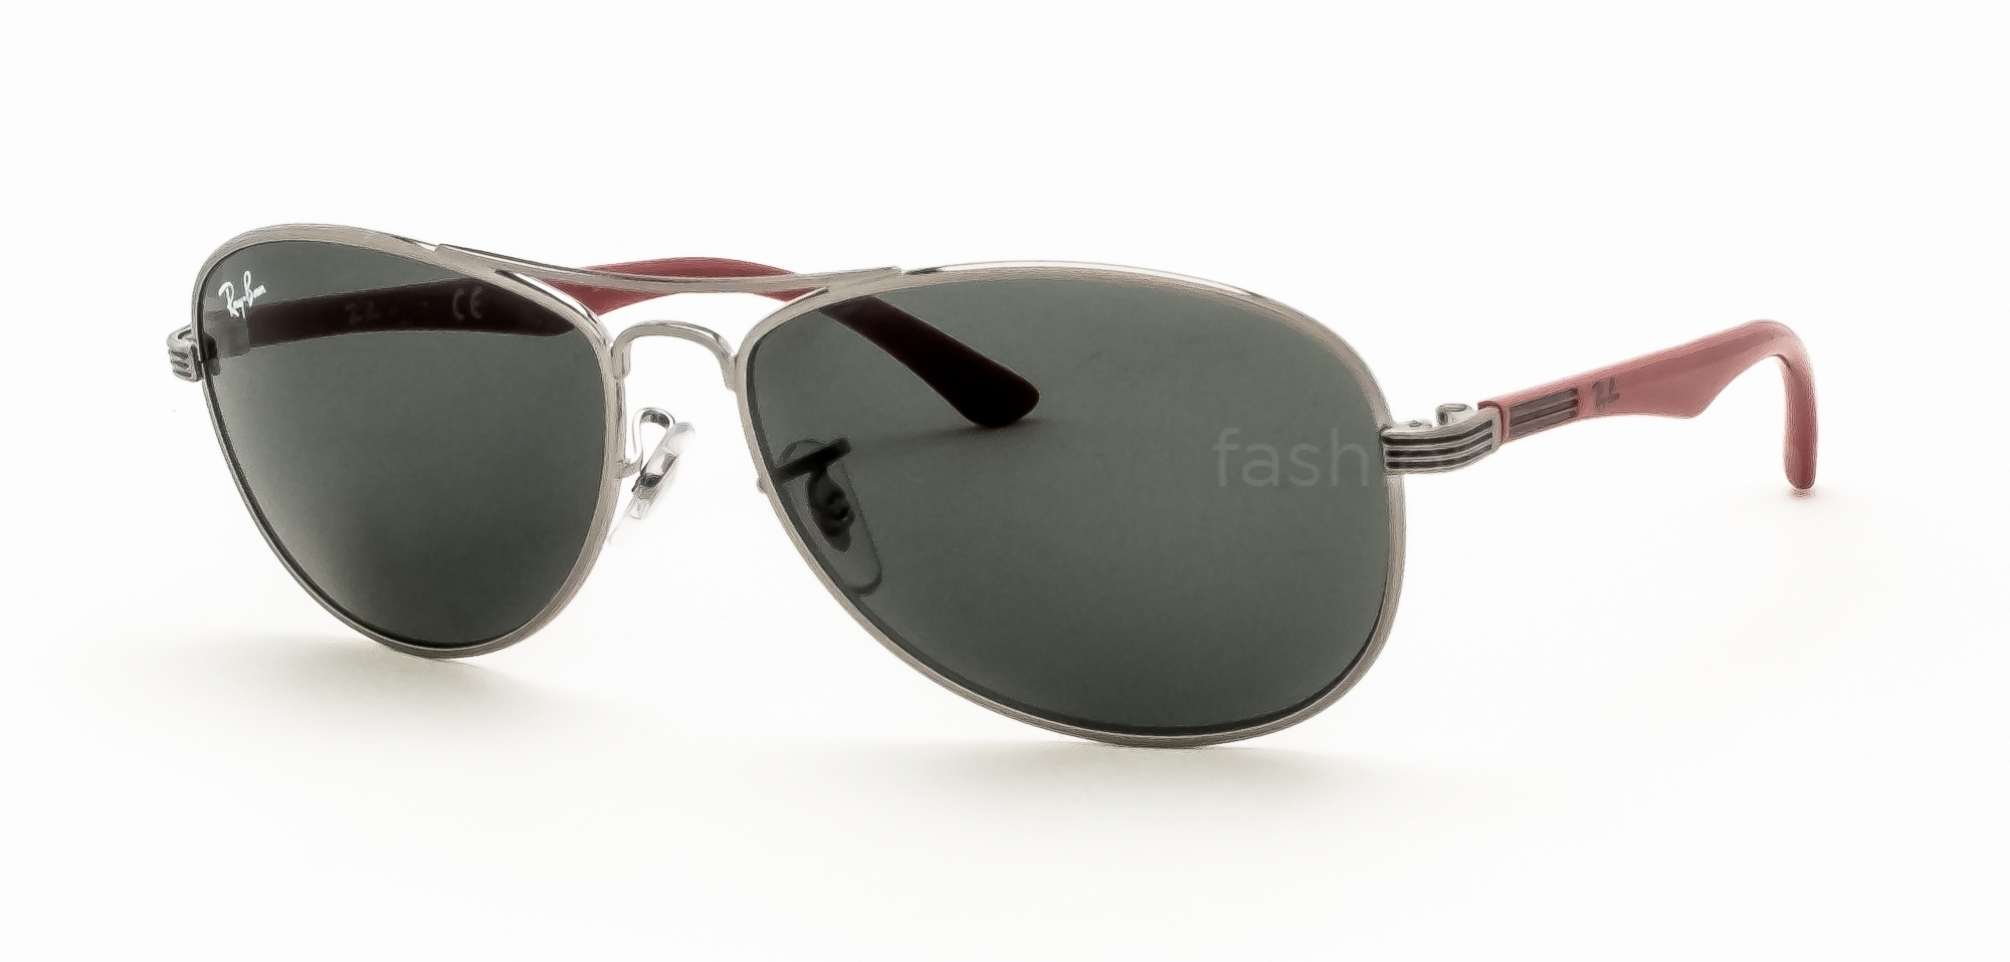 4187f89ccc Rayban 8302 « One More Soul